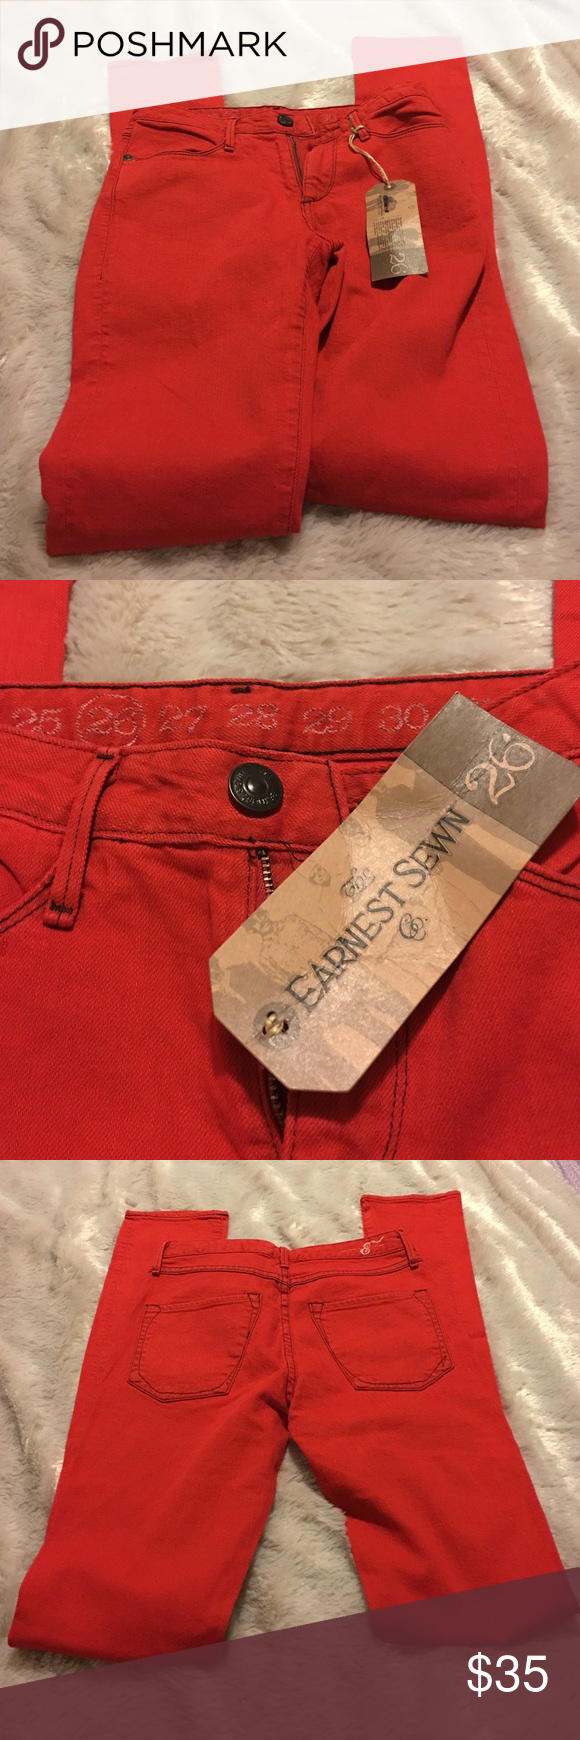 Earnest Sewn Skinny Jeans NWT Red Skinny Jeans Ginger 128 Size 26W 34 Inseam.  One very small blemish pictured on Back left leg near ankle. Earnest Sewn Jeans Skinny